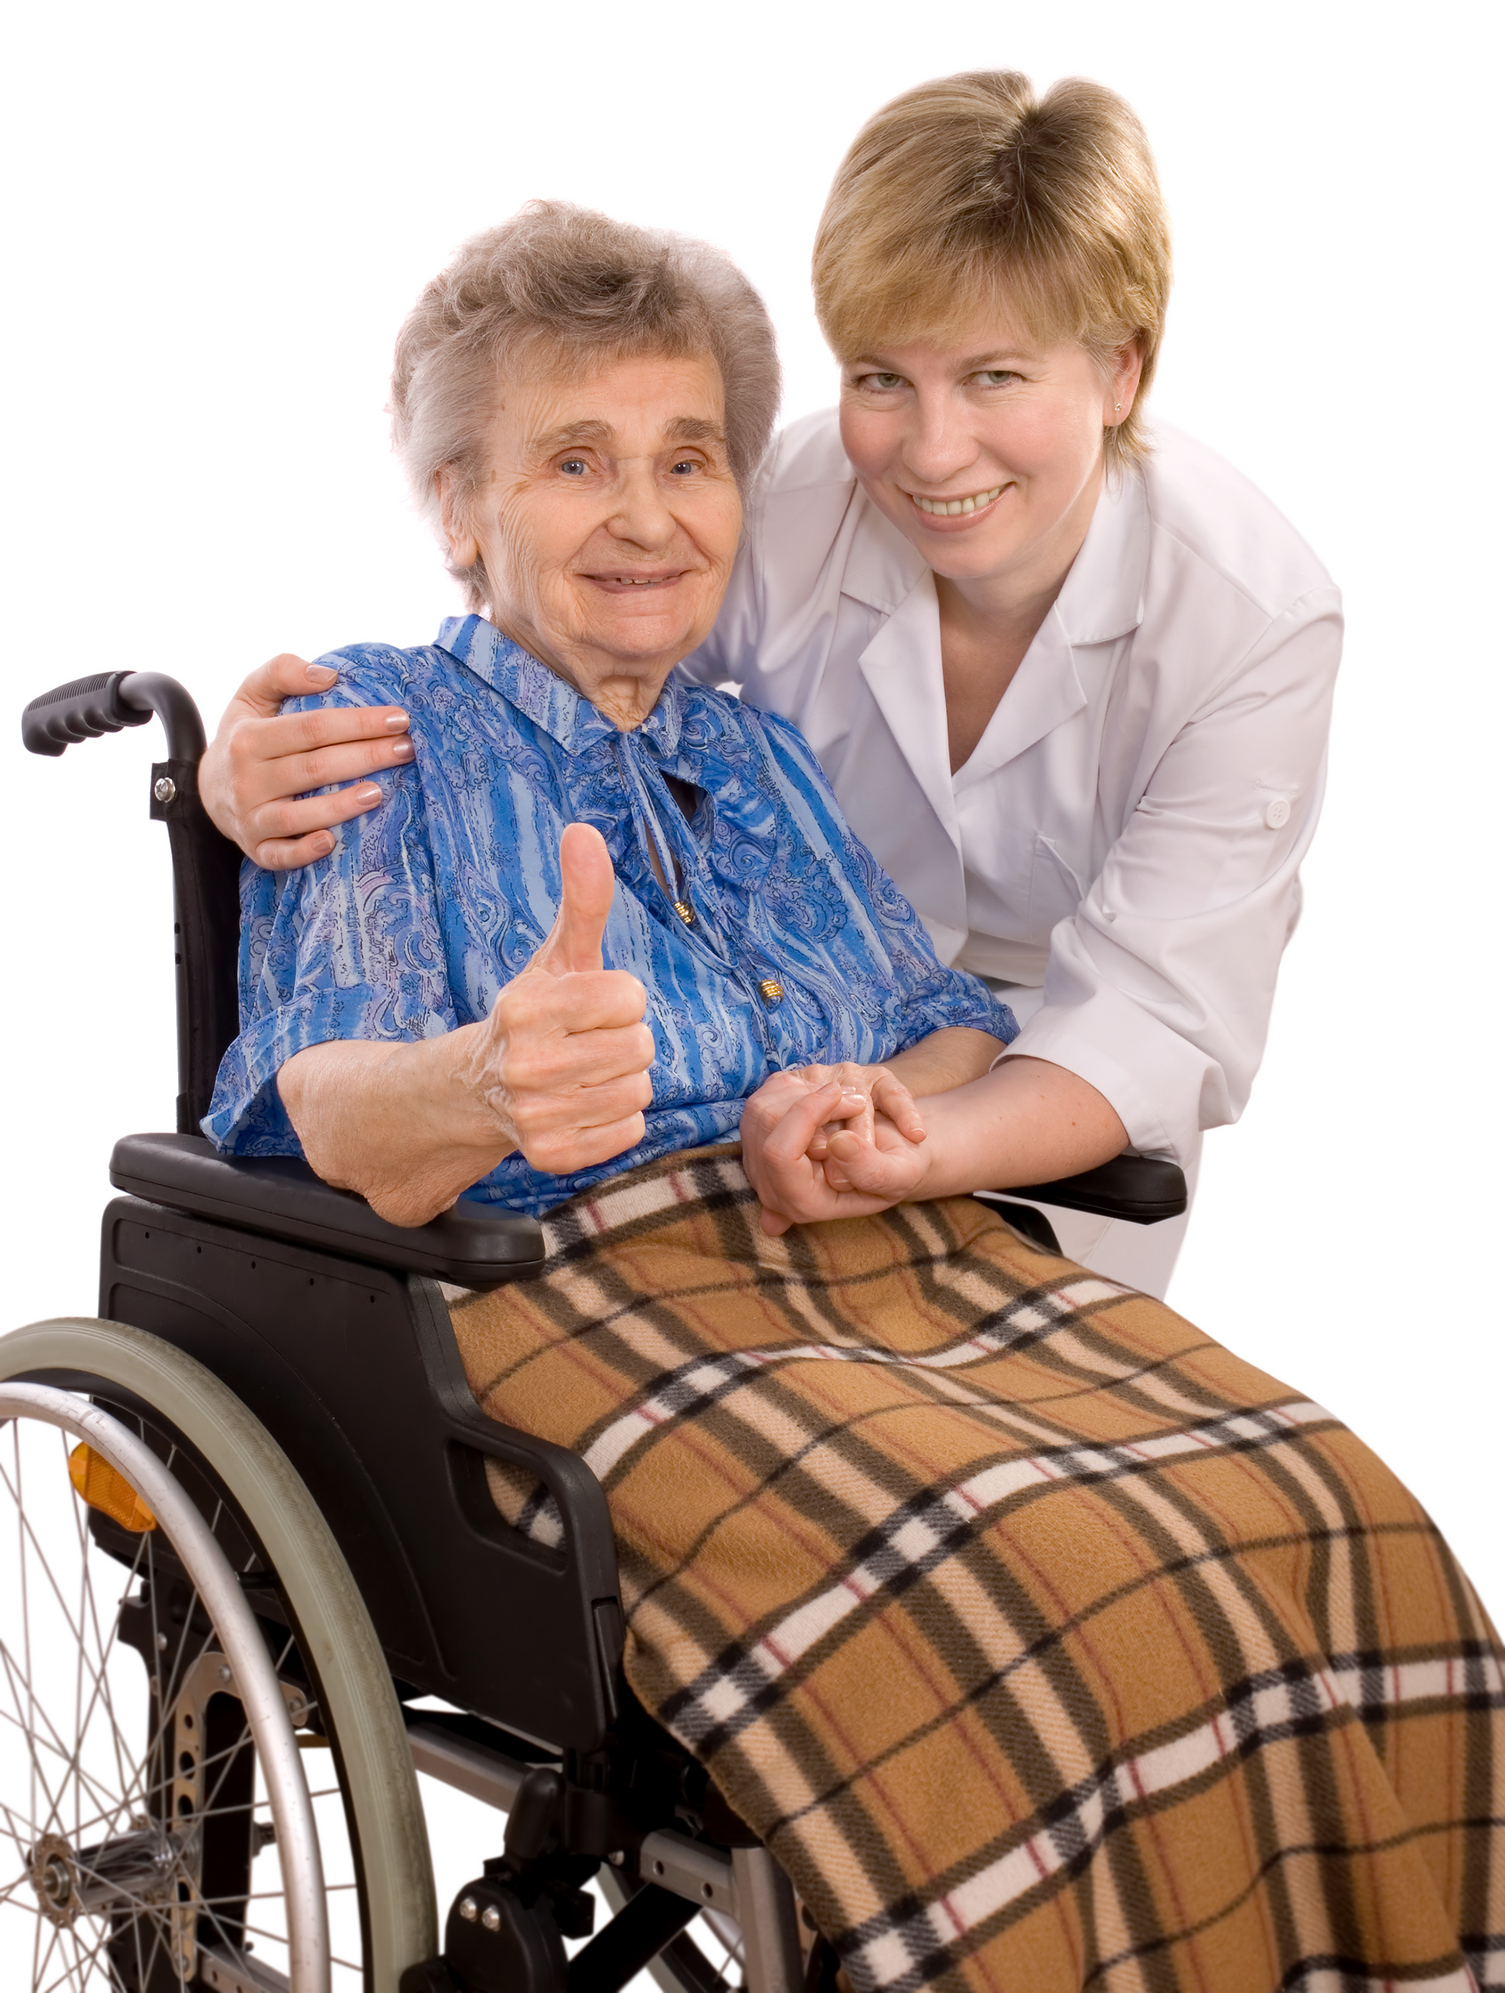 elderly care Recruiting foreign care workers will be germany's nearest option to fix  understaffing at homes for the elderly, according to health minister.